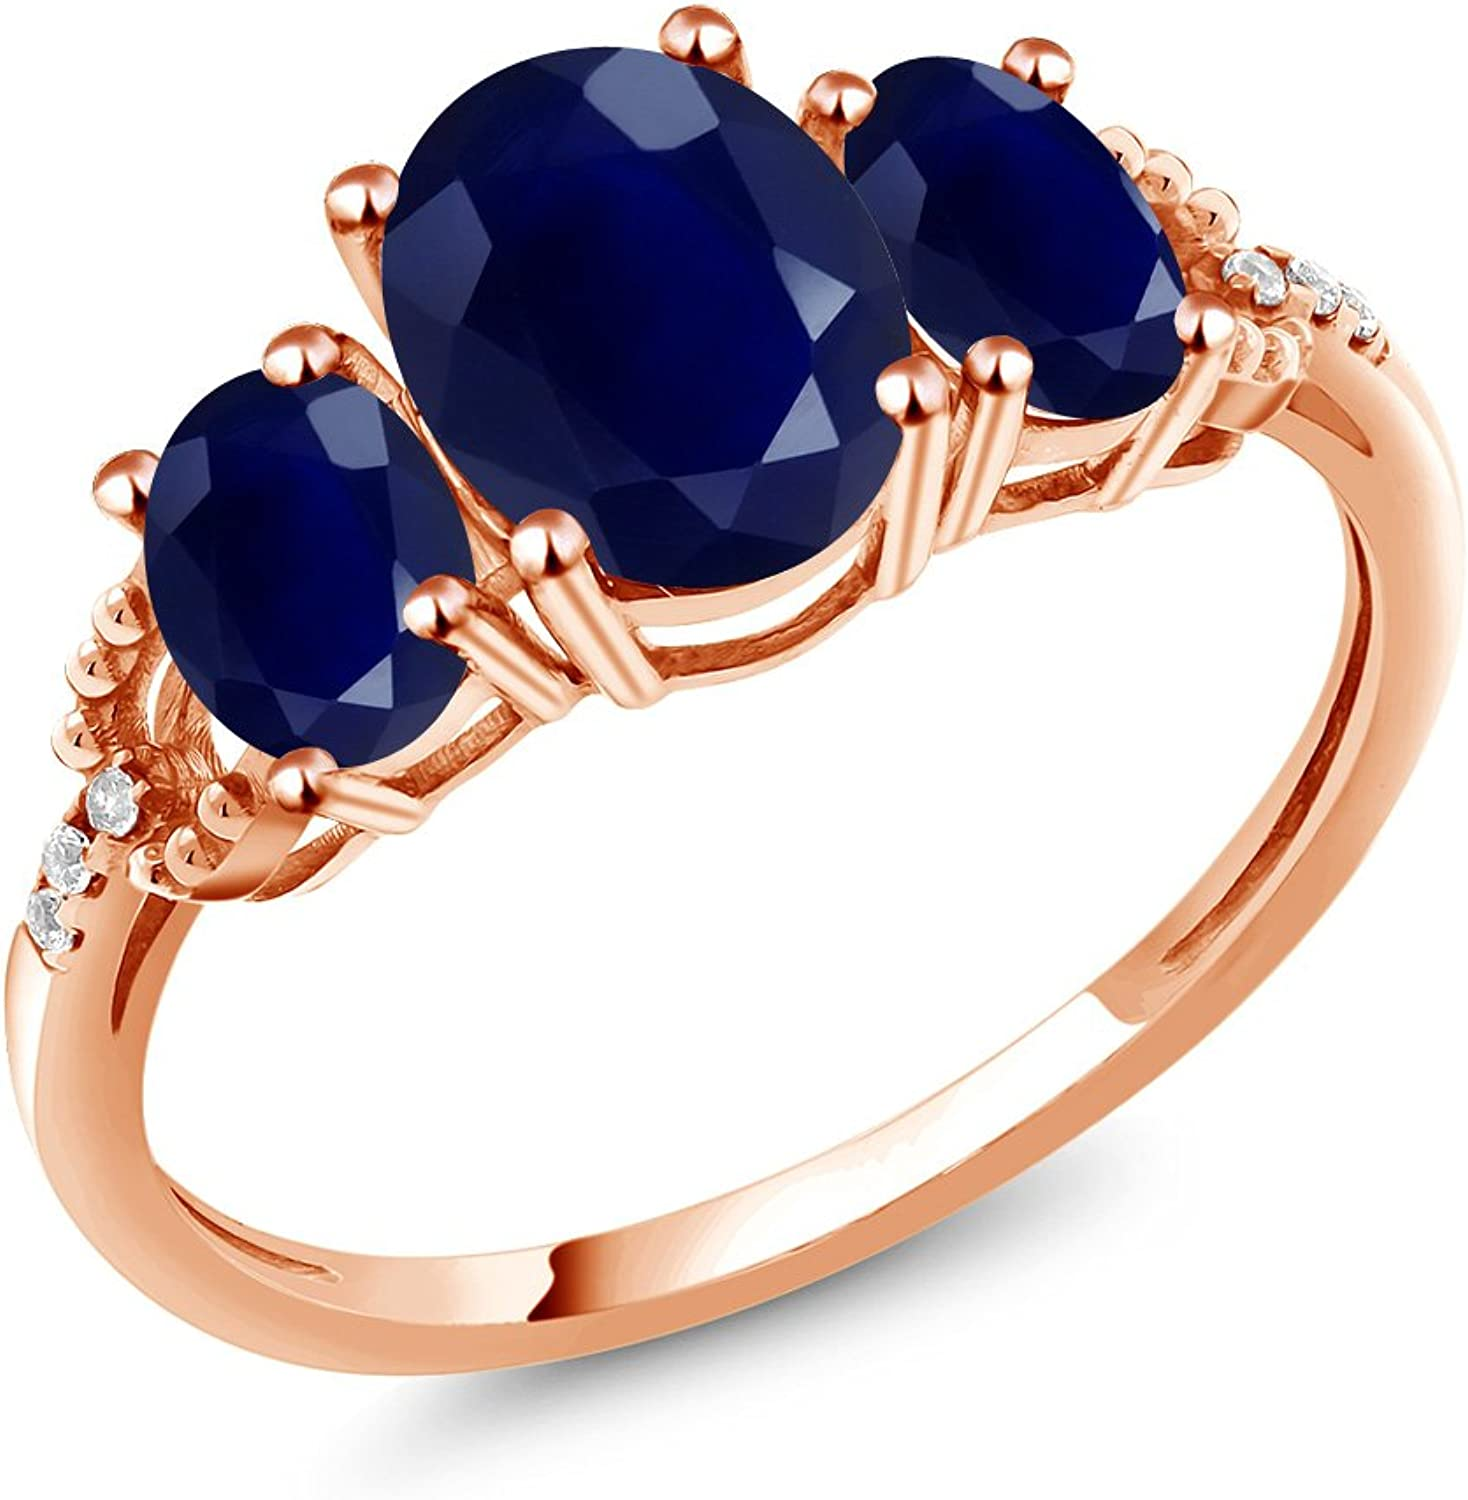 2.93 Ct Oval bluee Sapphire 10K pink gold Diamond Accent Ring